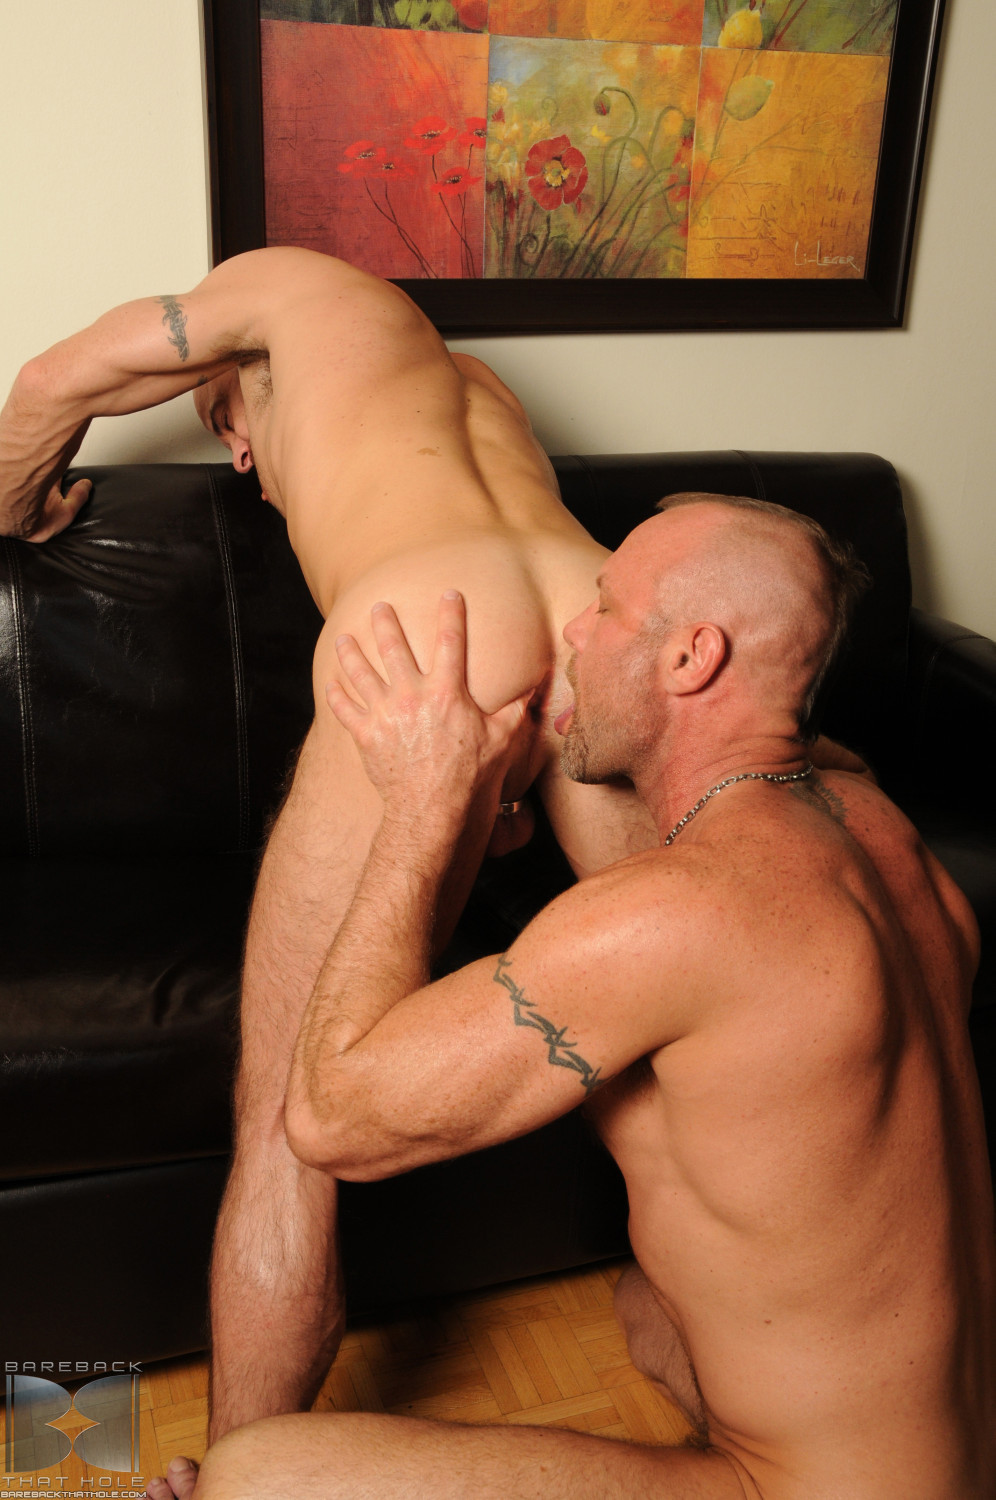 Bareback-That-Hole-Chad-Brock-and-Ben-Statham-big-uncut-cock-10 Bareback Fucking A Hot Hairy Uncut Bottom